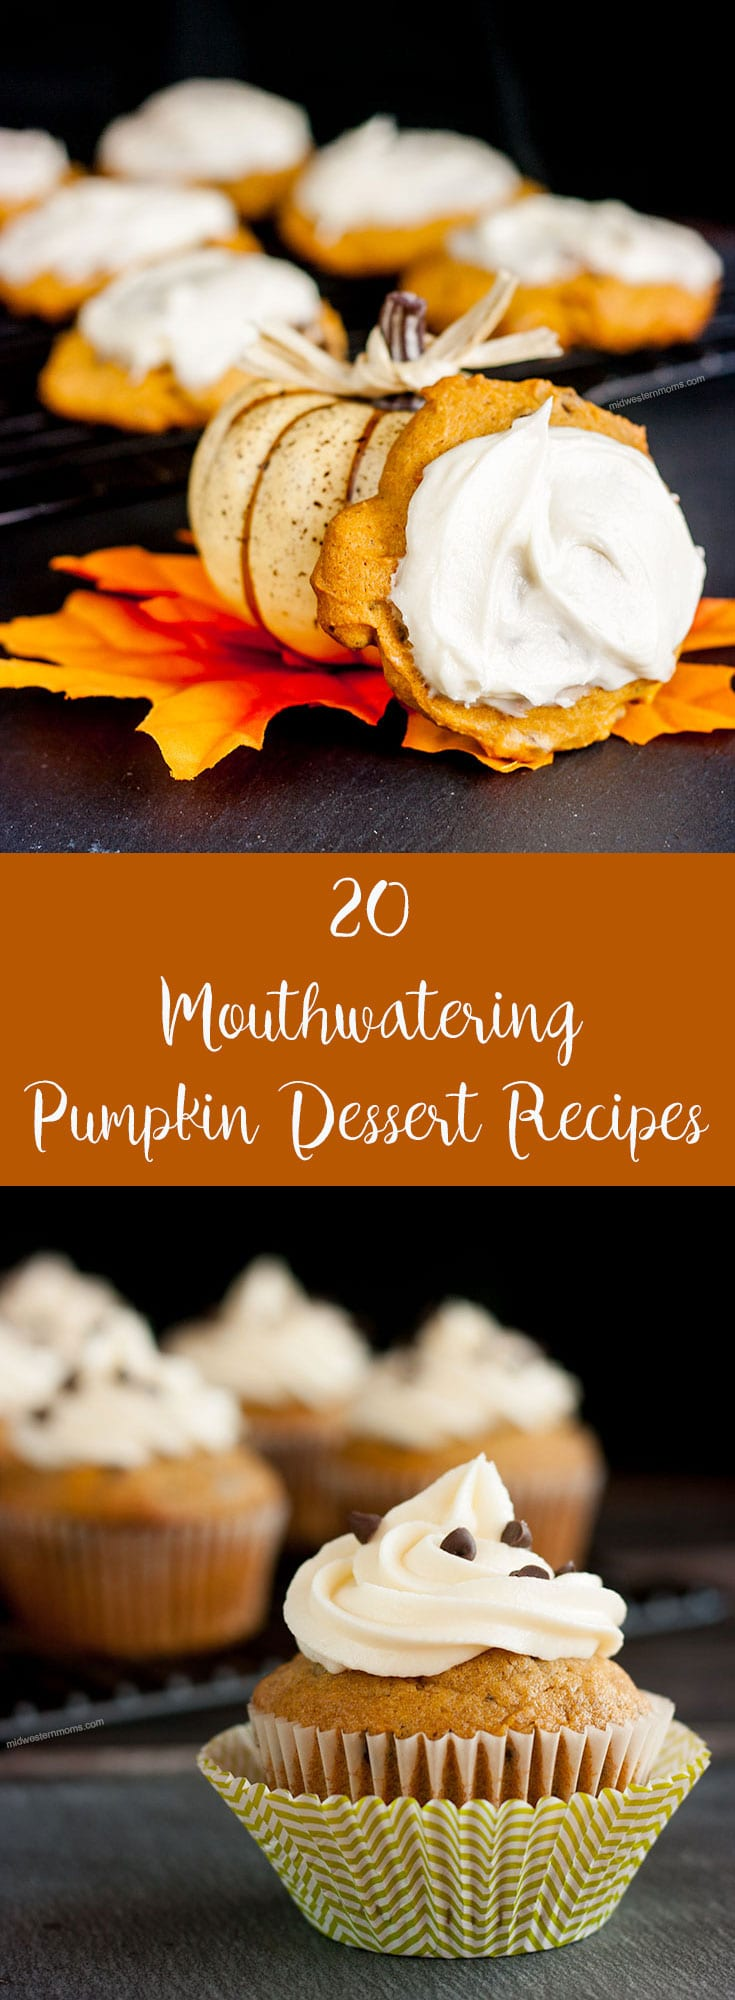 20 Mouthwatering pumpkin dessert recipes you must try this fall!